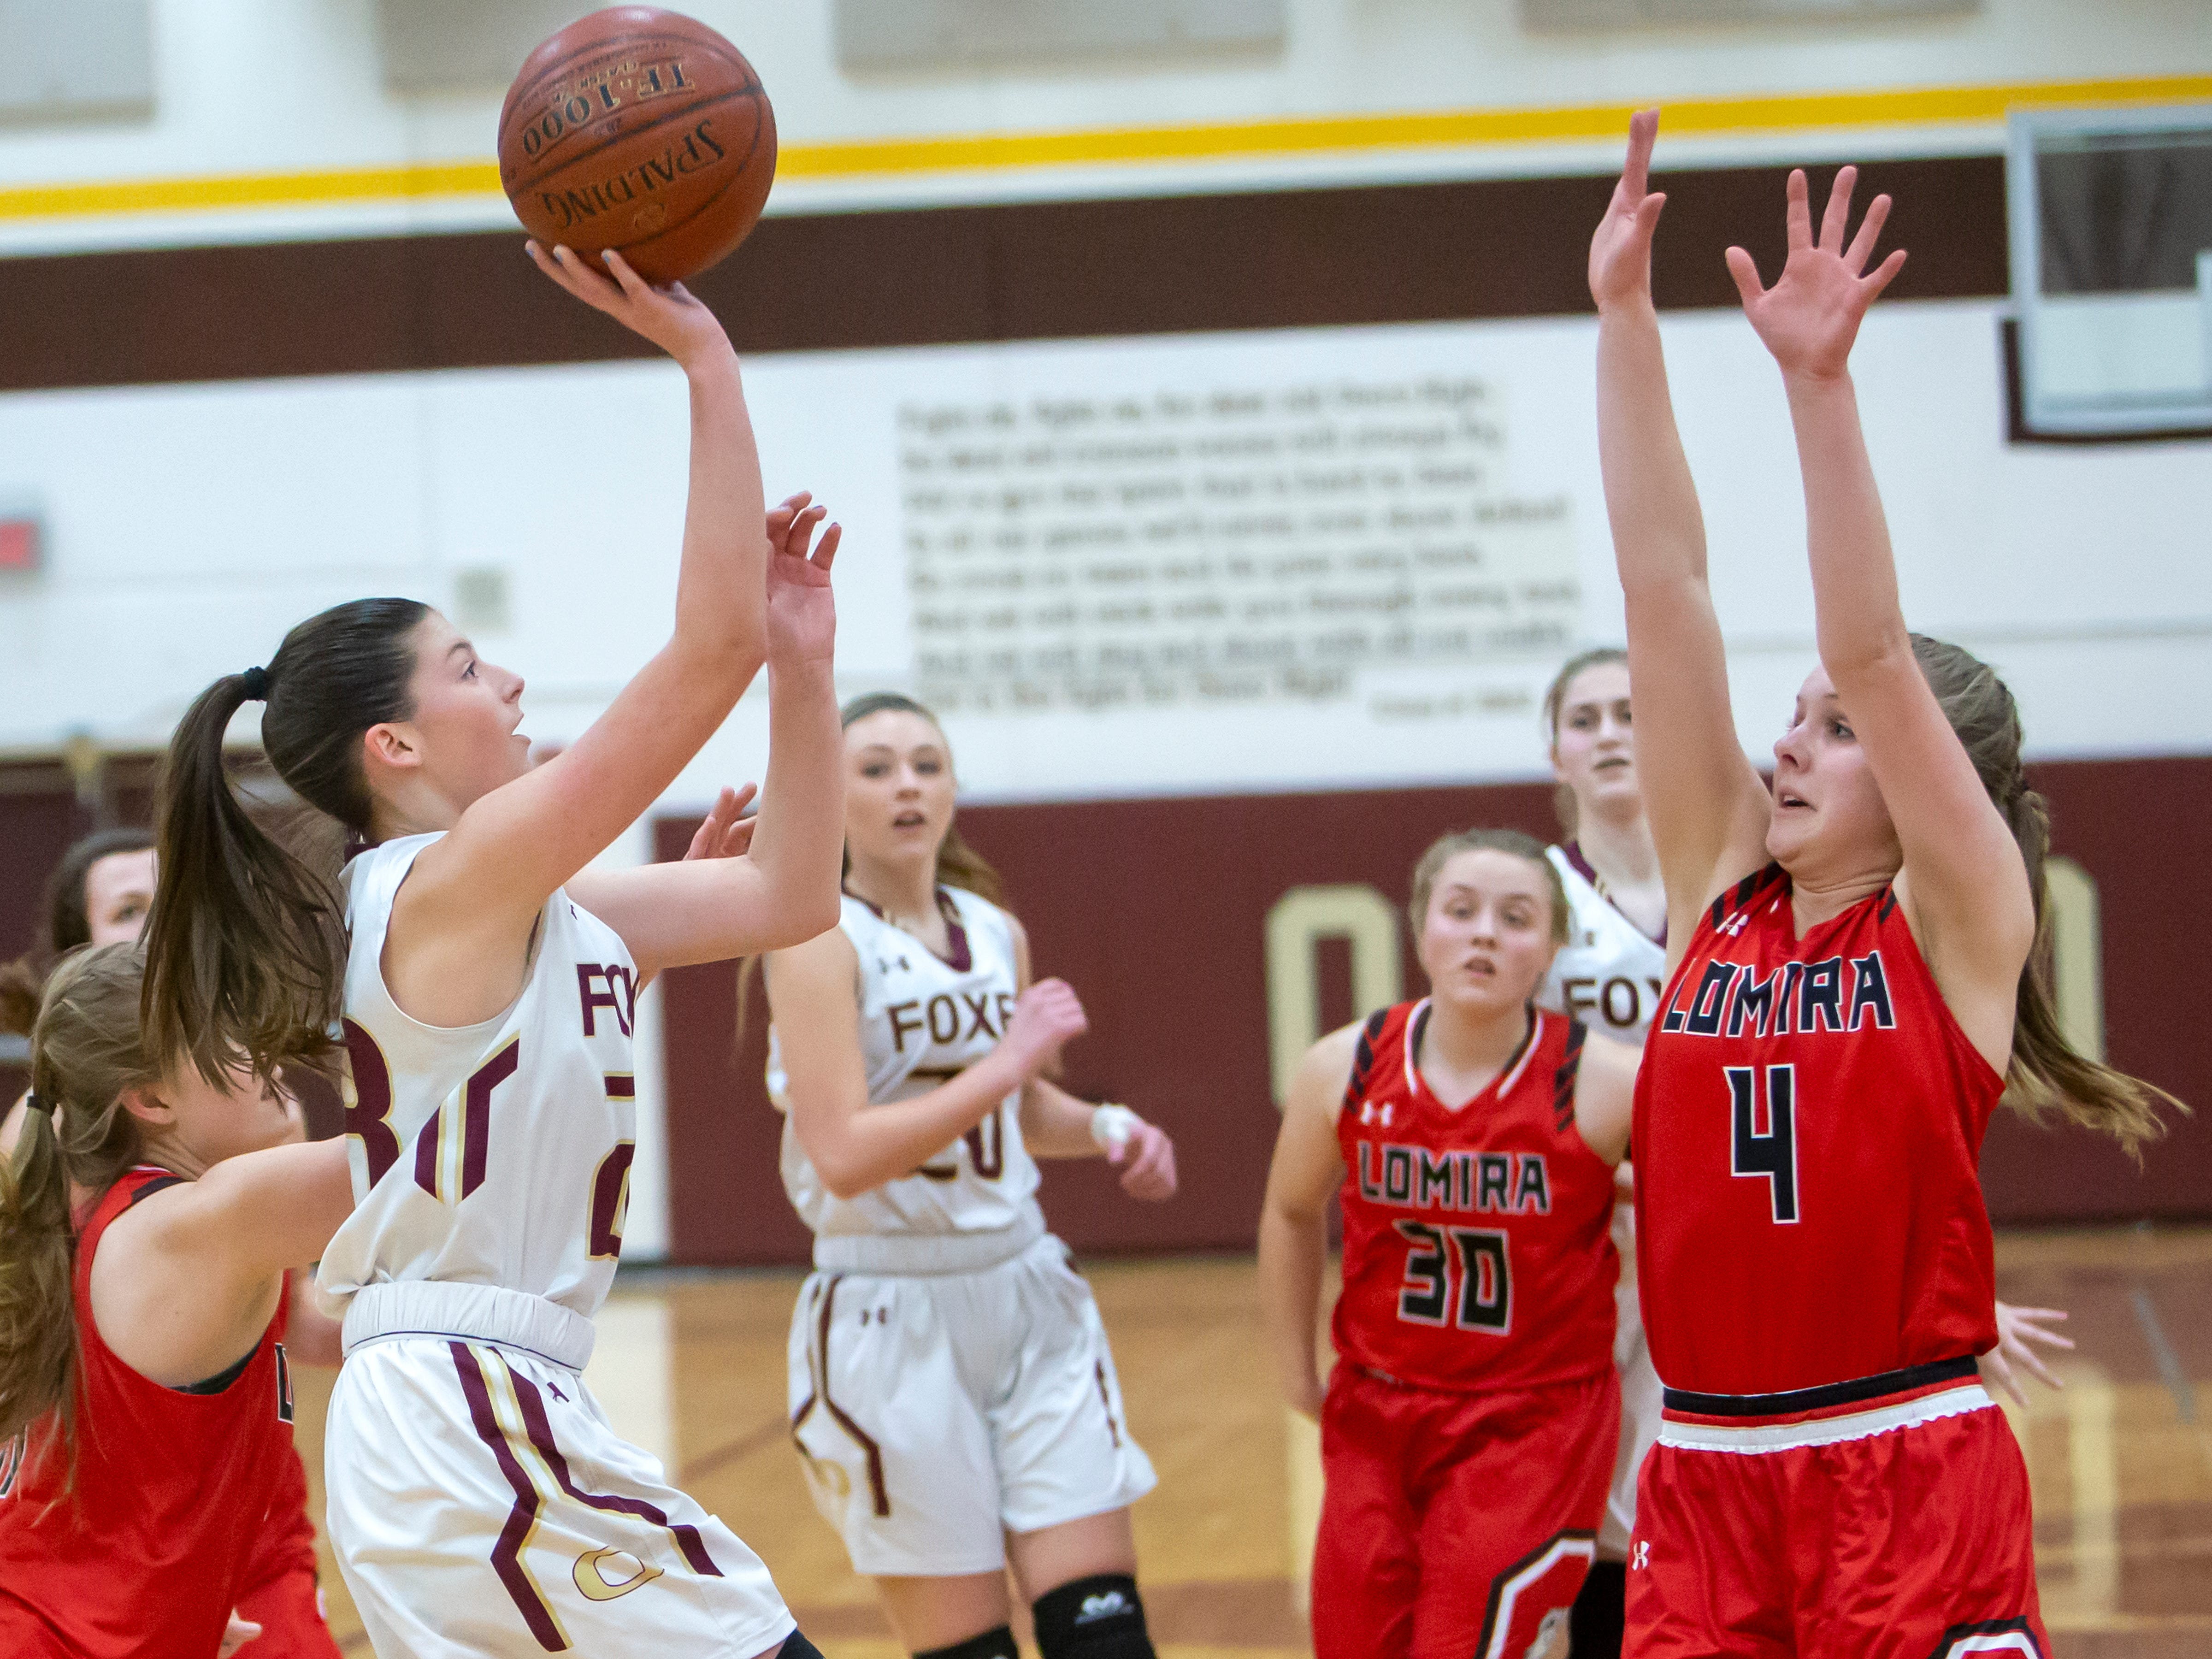 Omro's Bobbi Allison puts up a shot over Lomira's Lizzy Wulff at Omro High School on Friday, December 14, 2018.